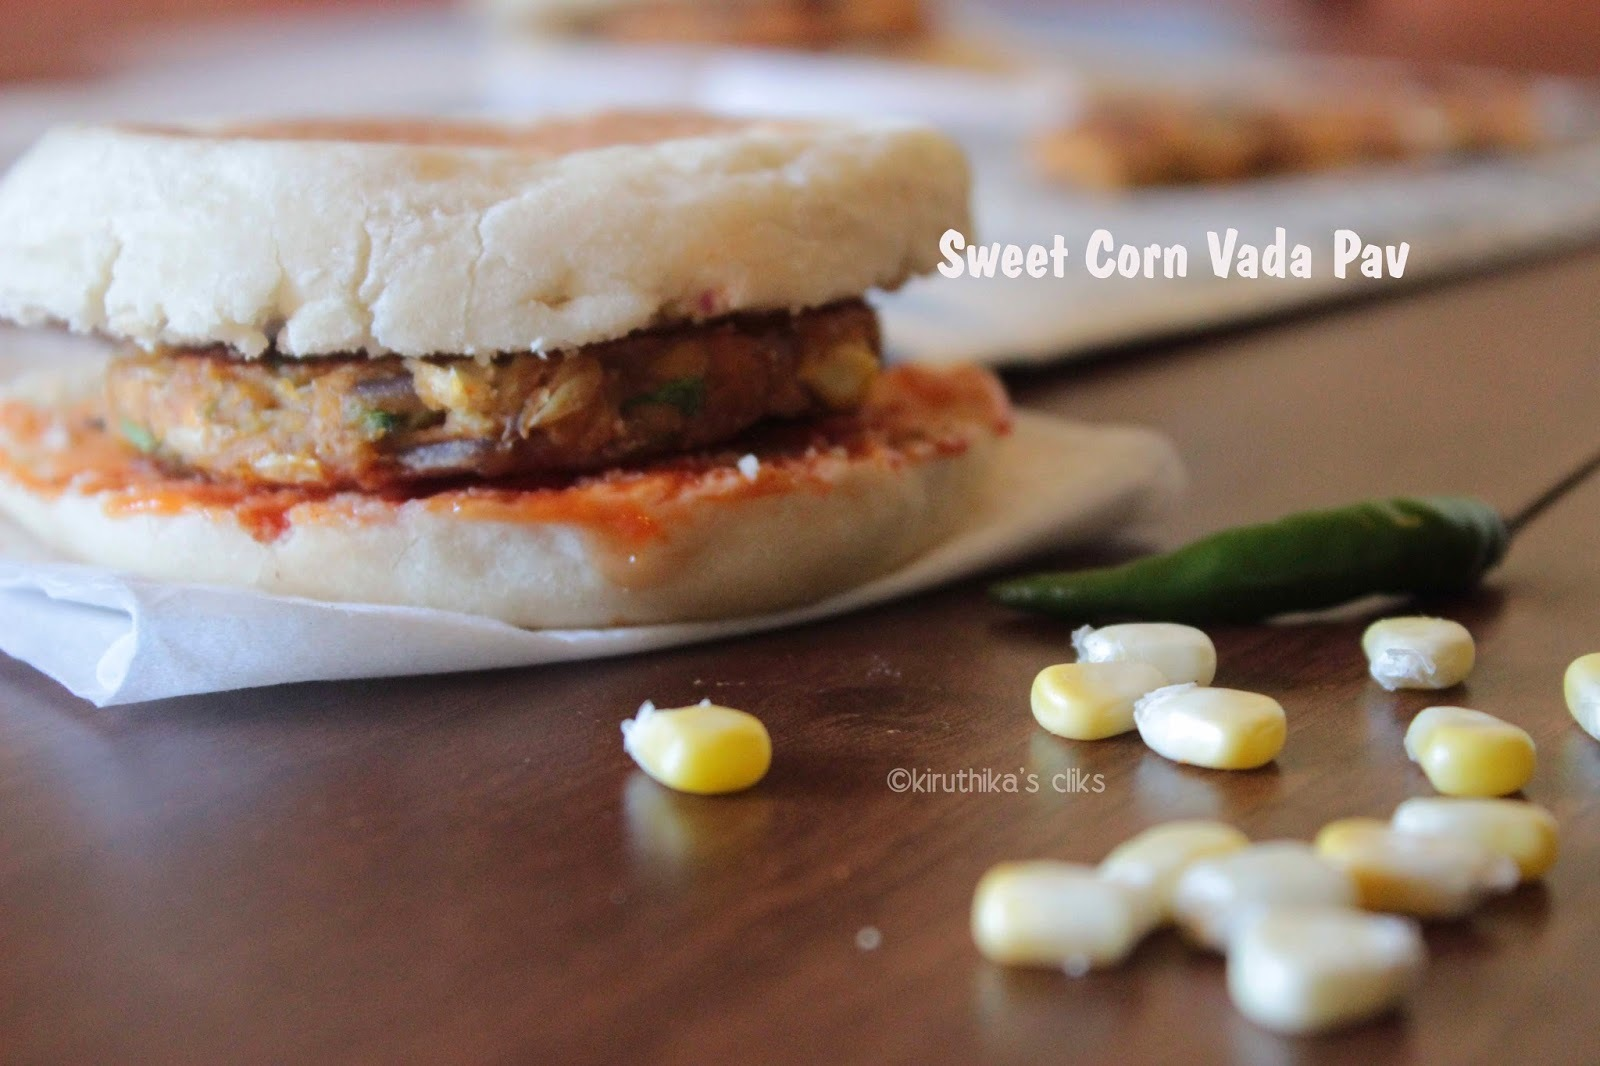 Sweet Corn Vada Pav